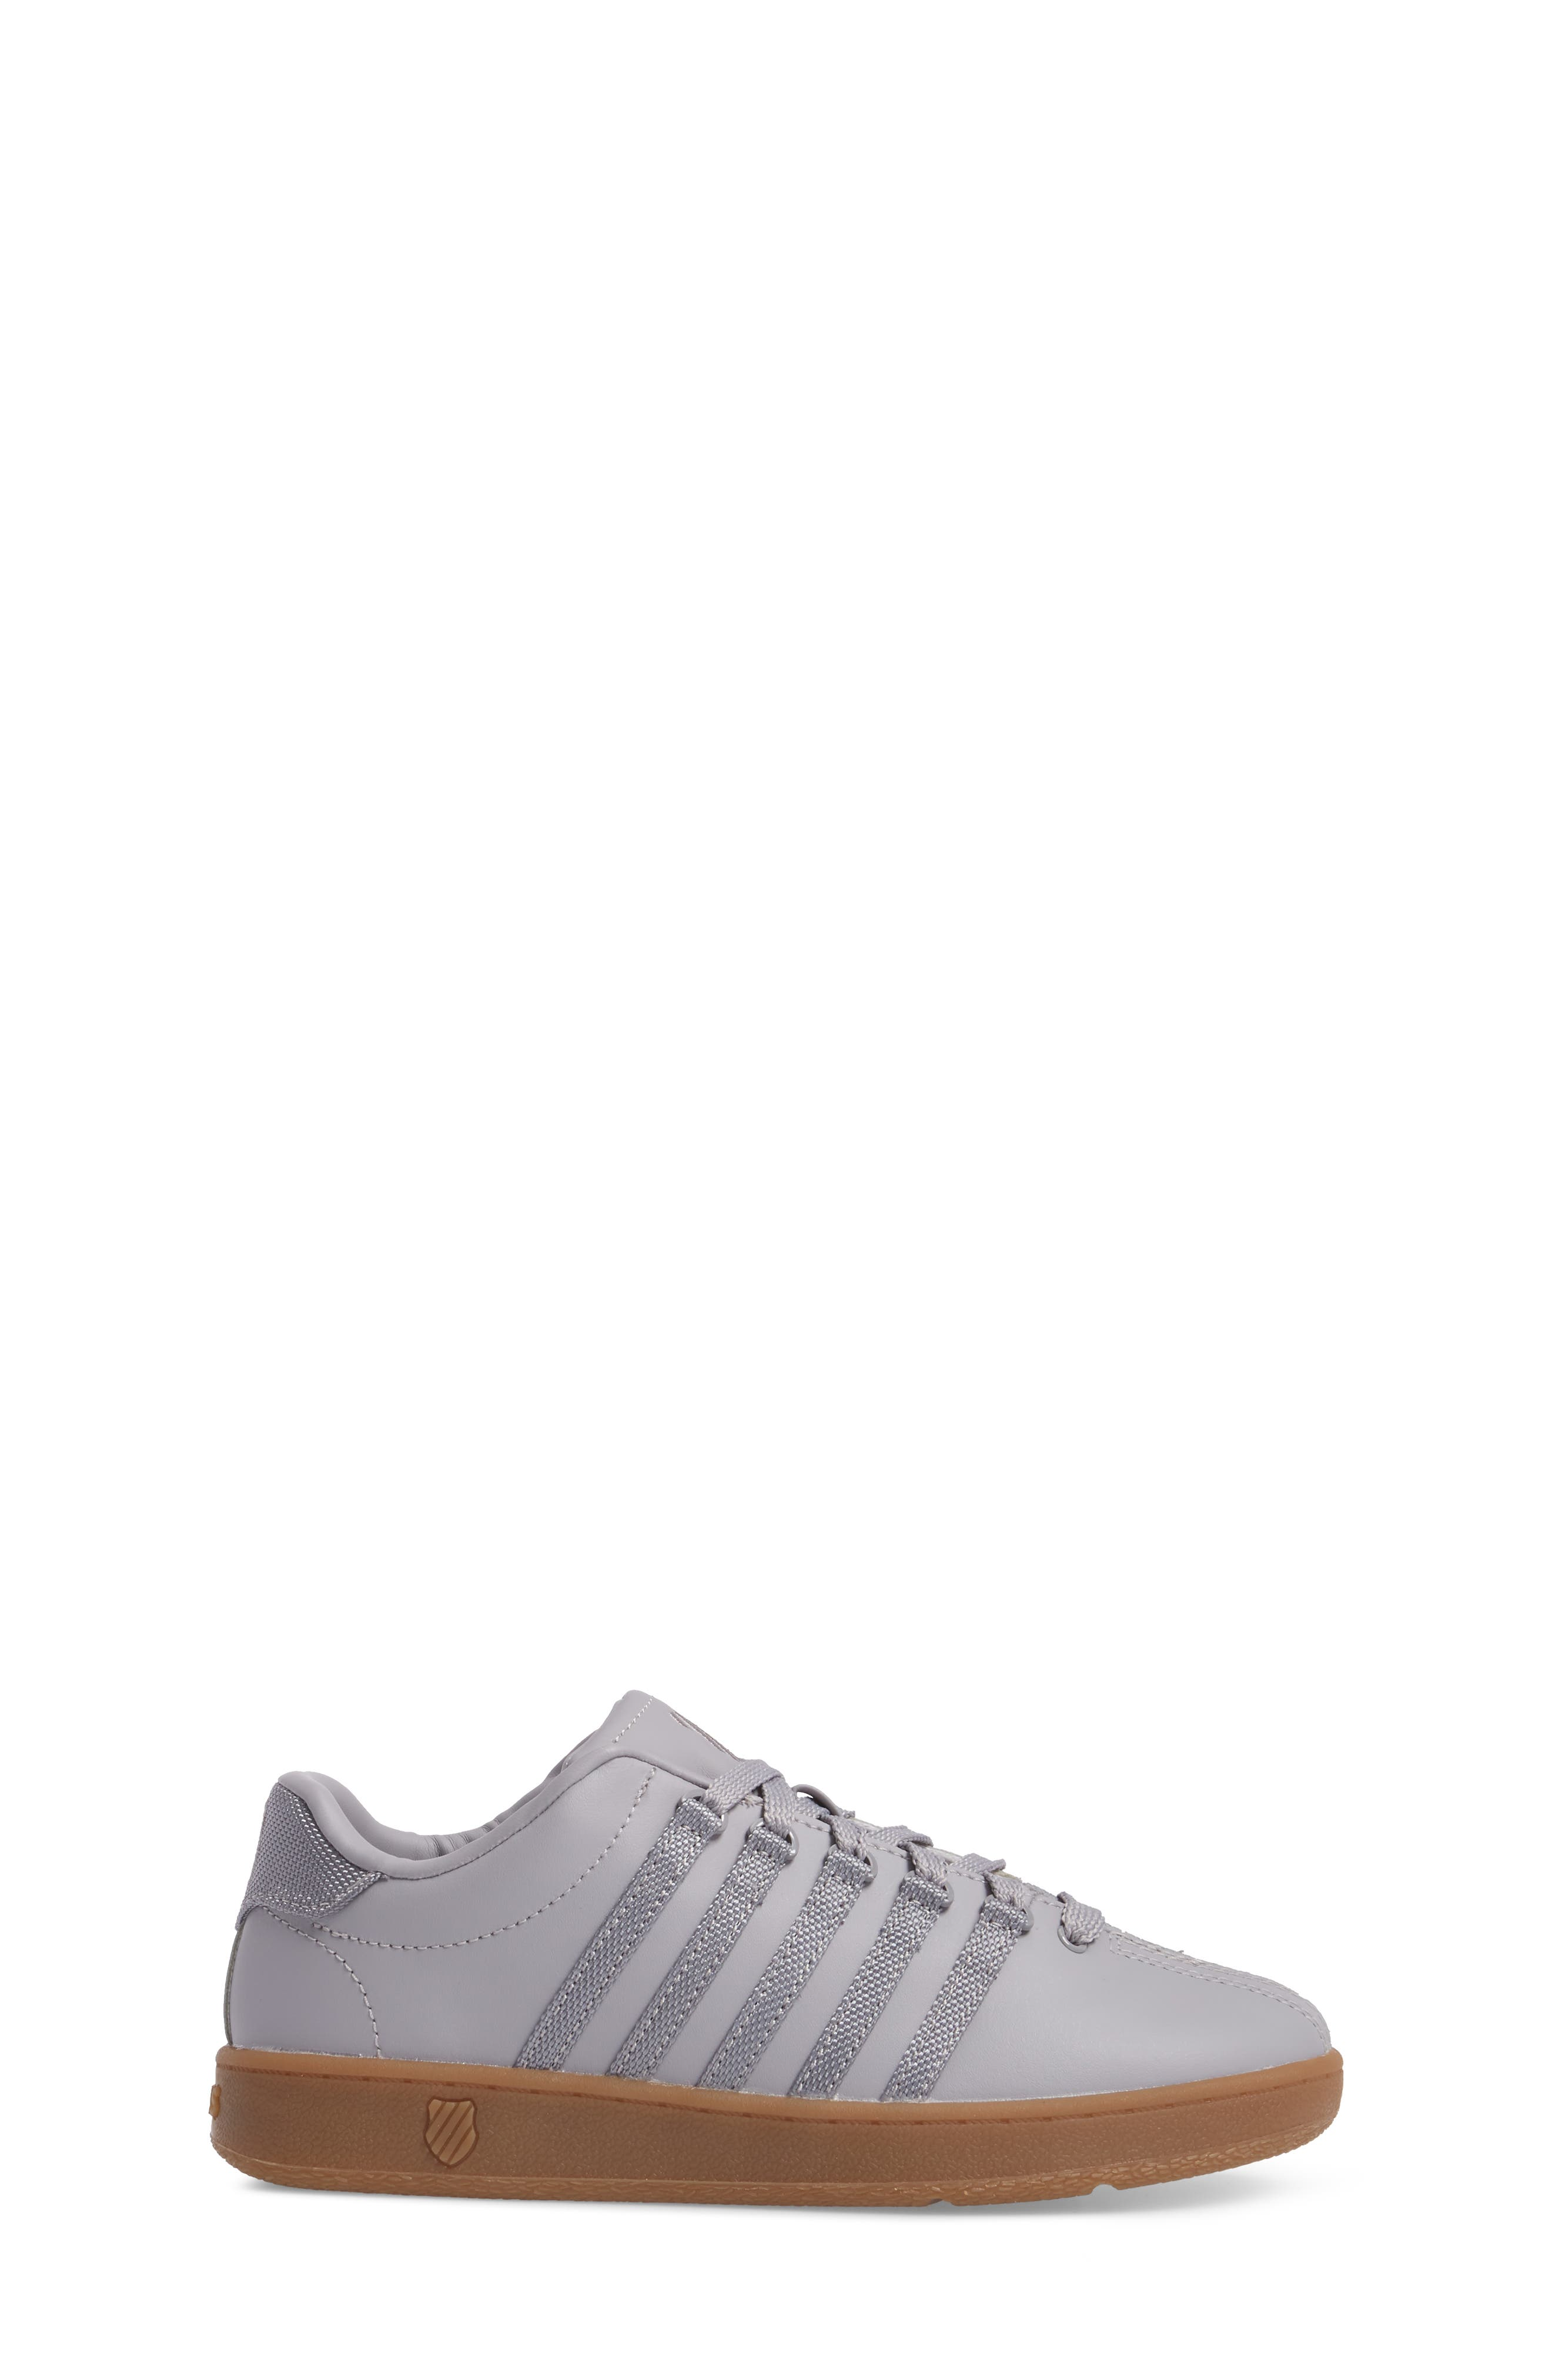 'Classic' Sneaker,                             Alternate thumbnail 3, color,                             Gray